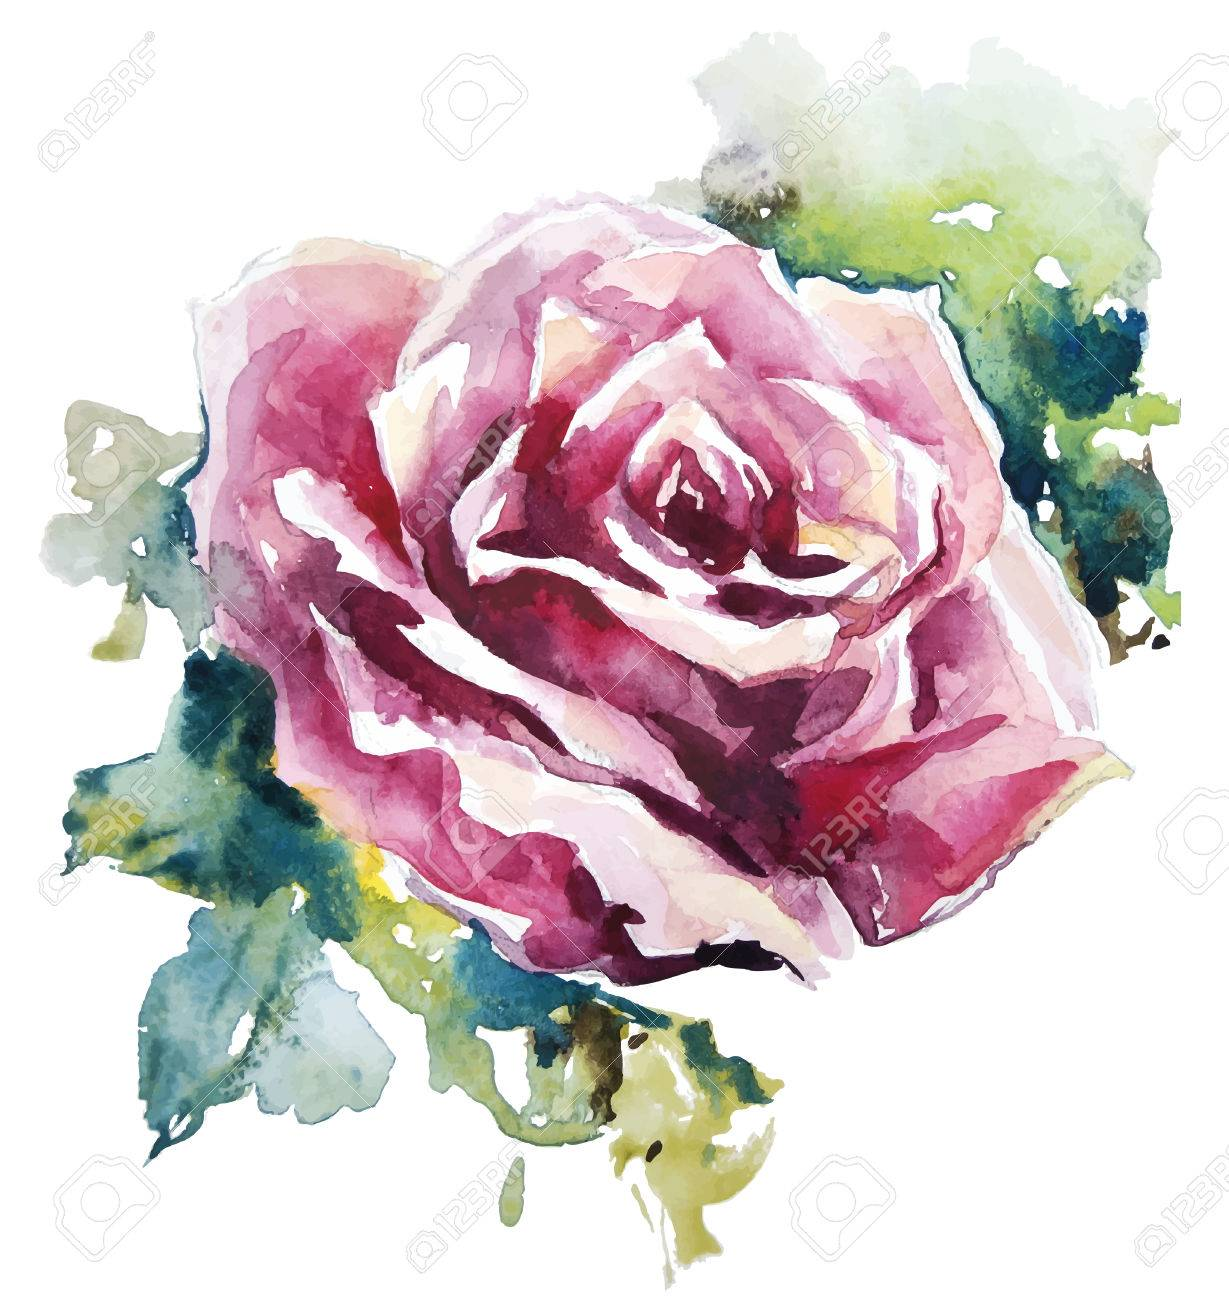 watercolor rose flower painting royalty free cliparts vectors and